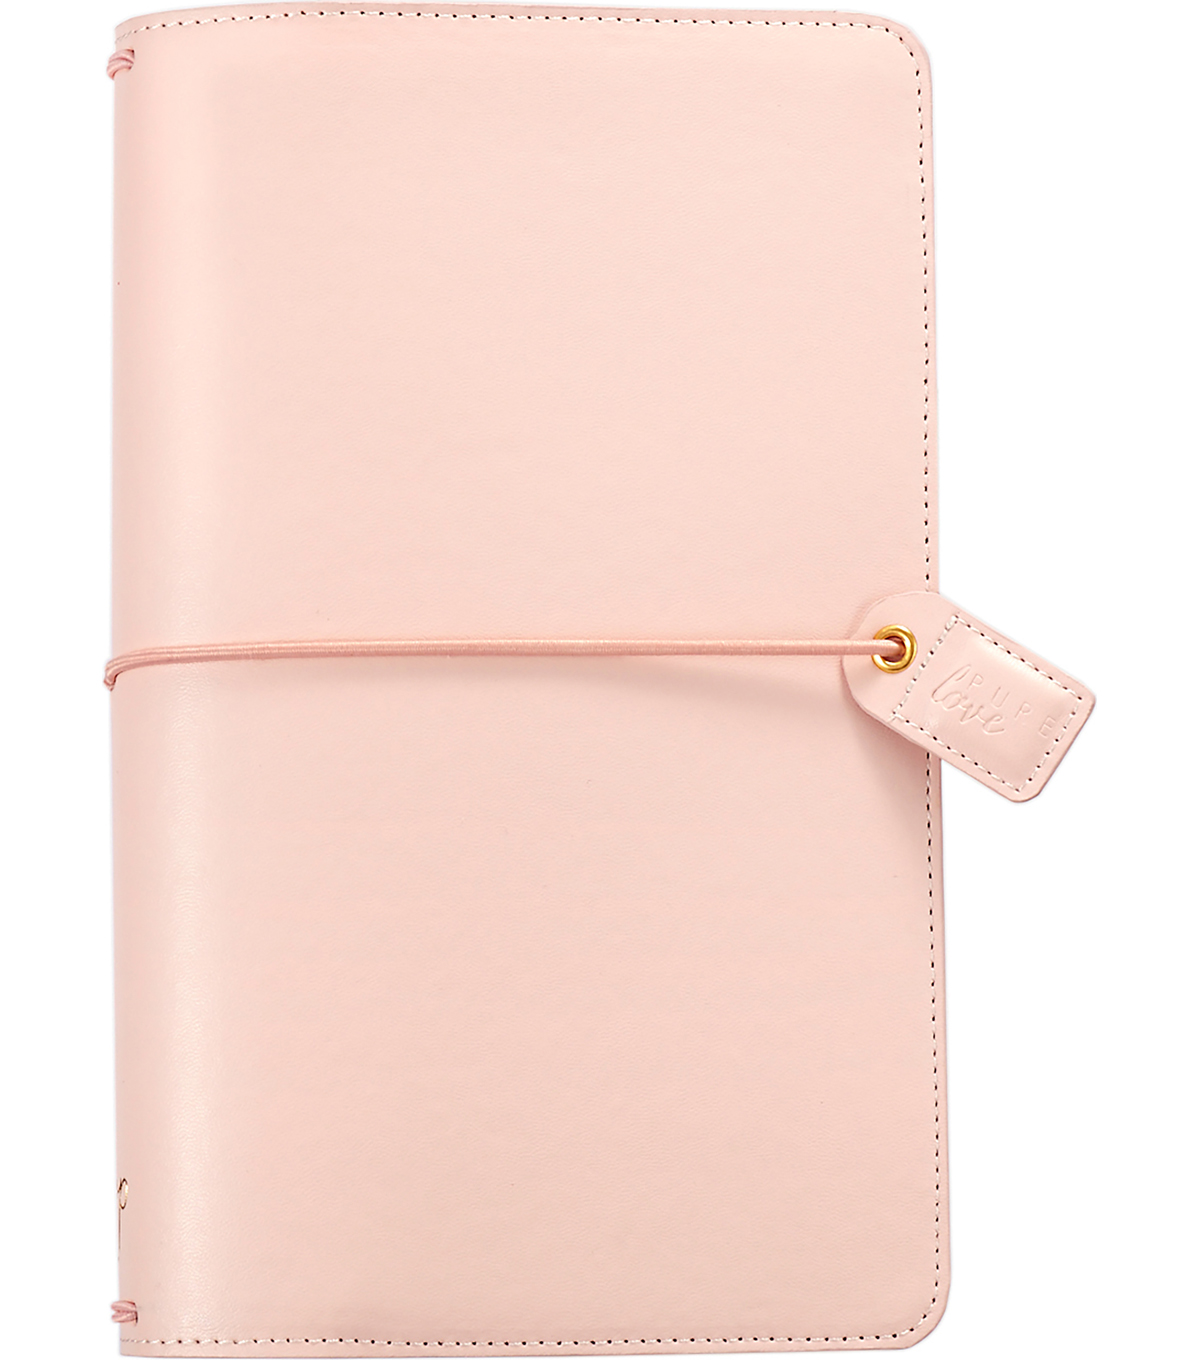 Webster\u0027s Pages Color Crush Faux Leather Traveler\u0027s Planner-Blush Pink